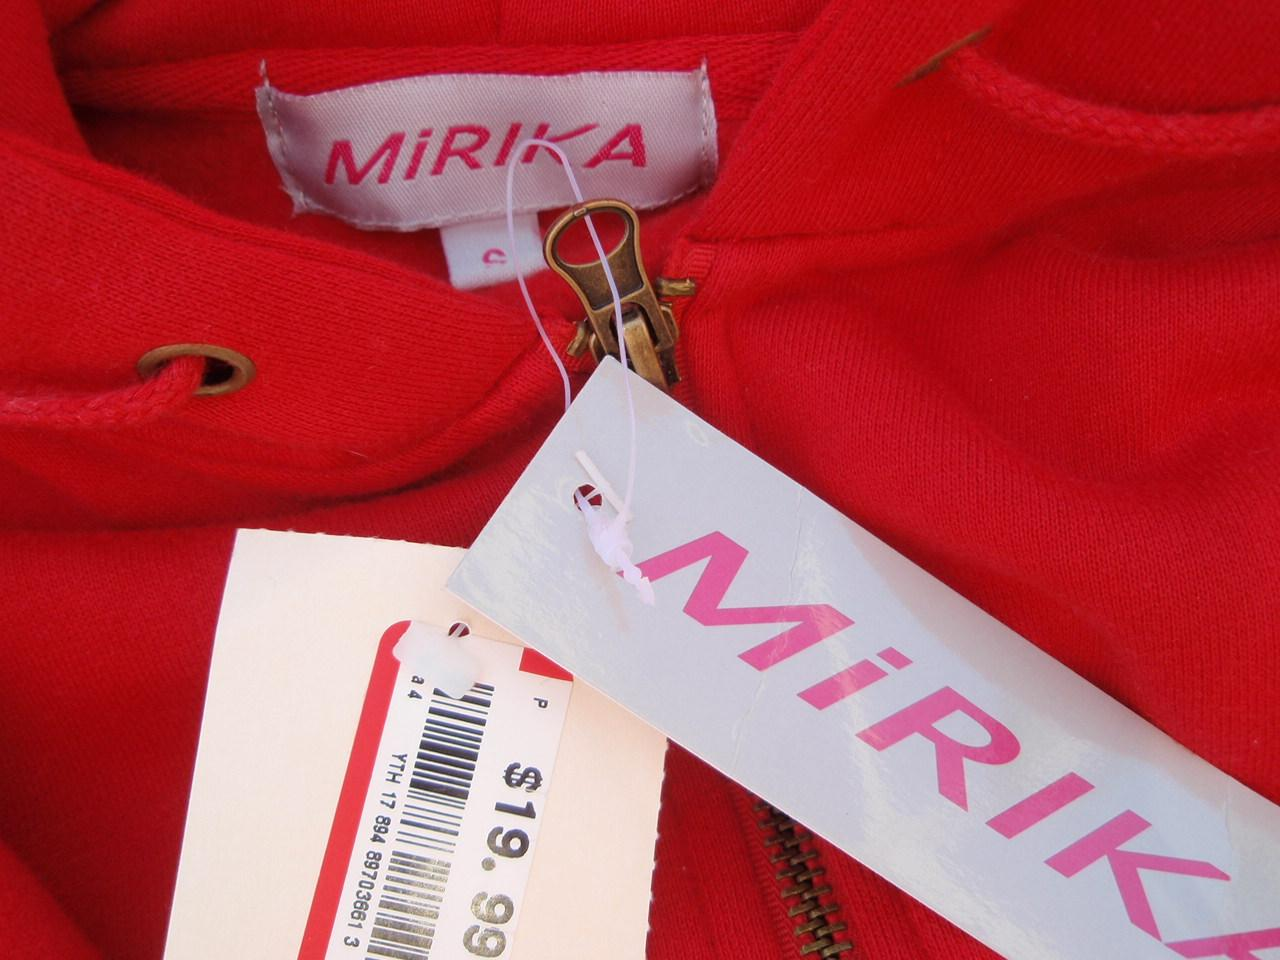 Recalled Mirika jacket label